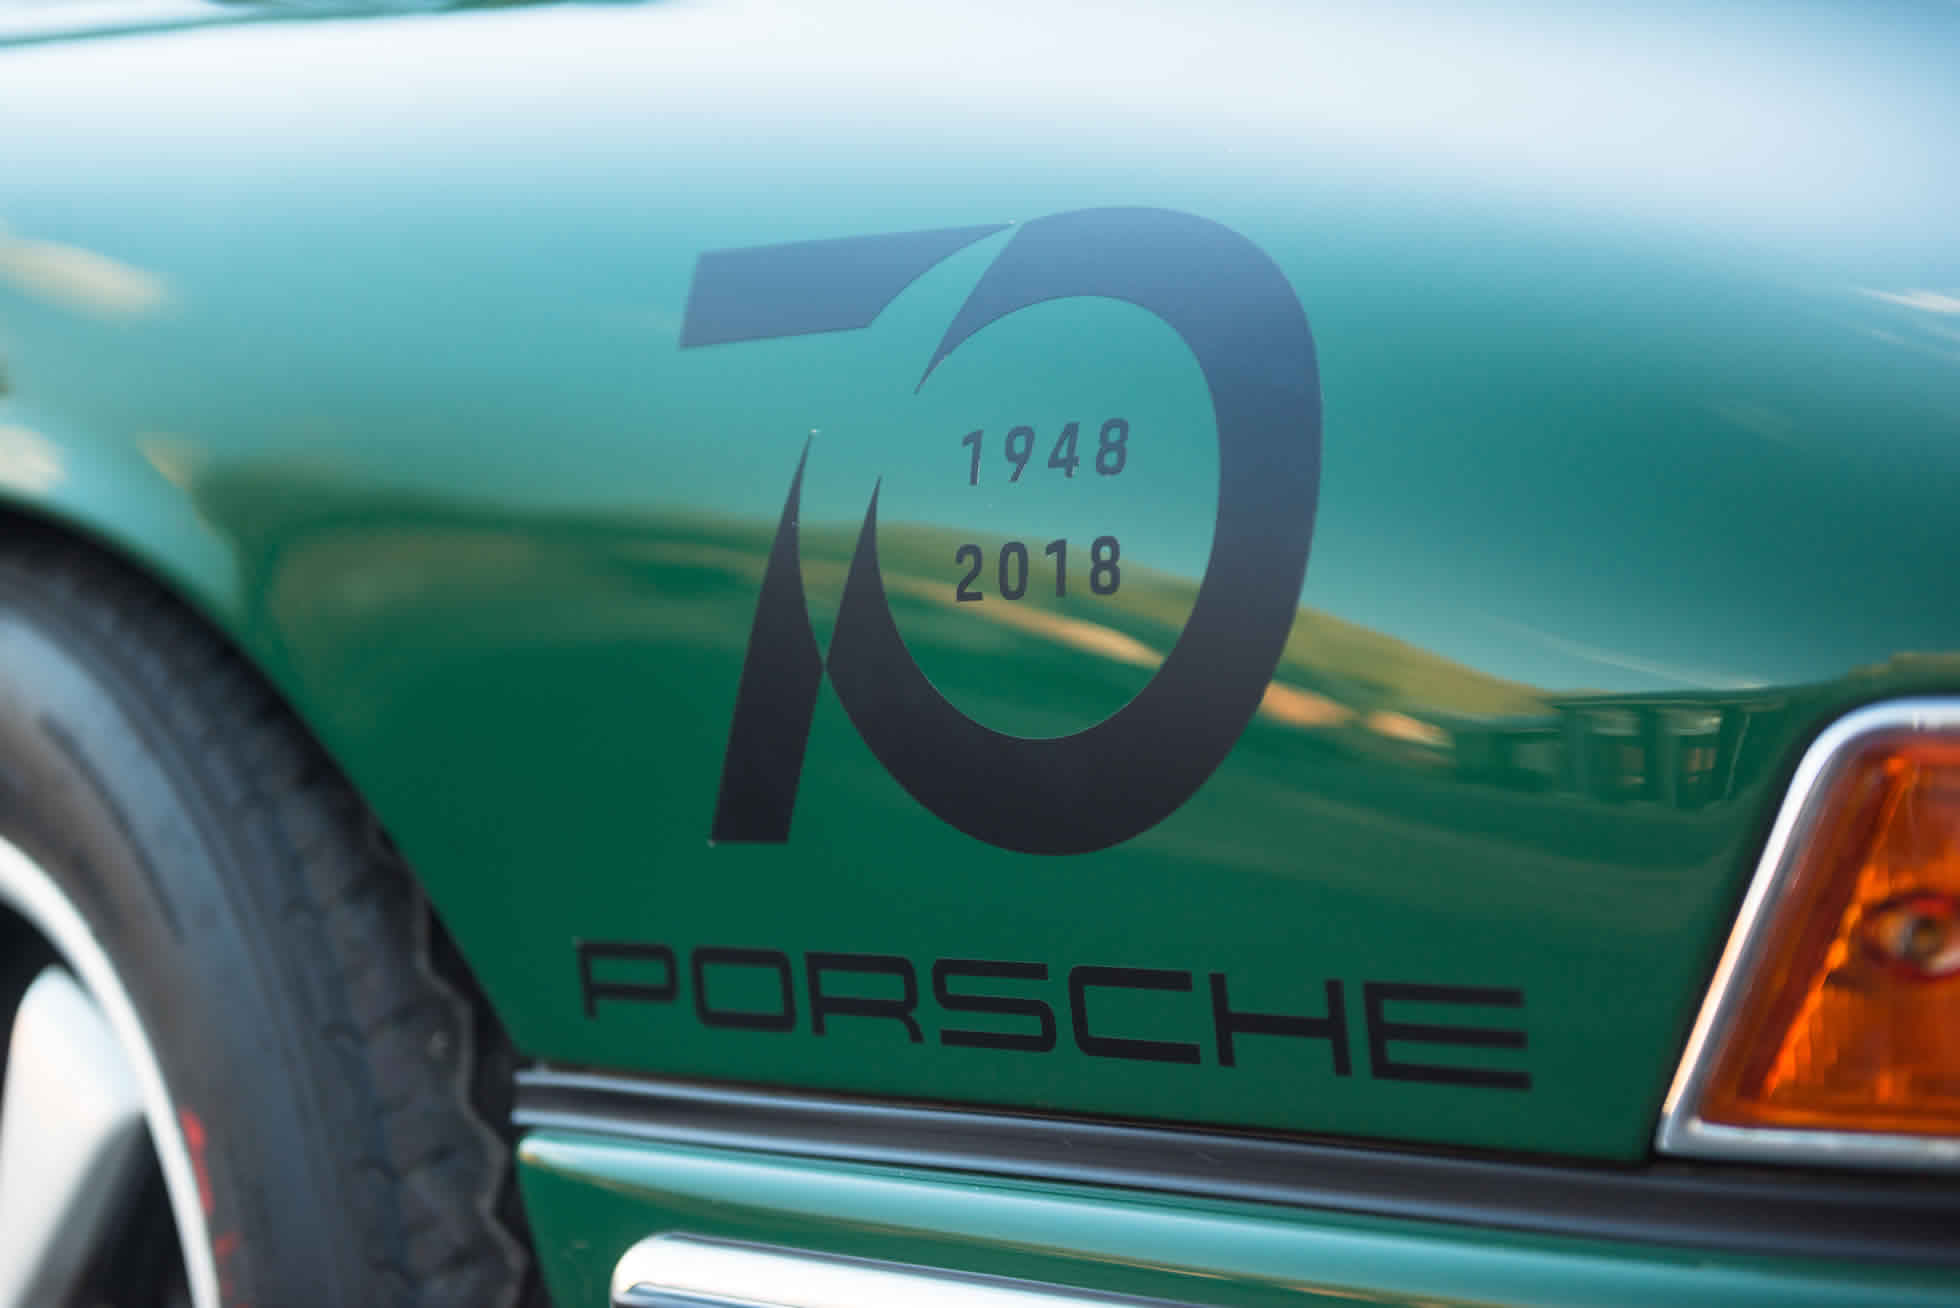 For Sale 1965 Porsche 911 70 years of Porsche badging